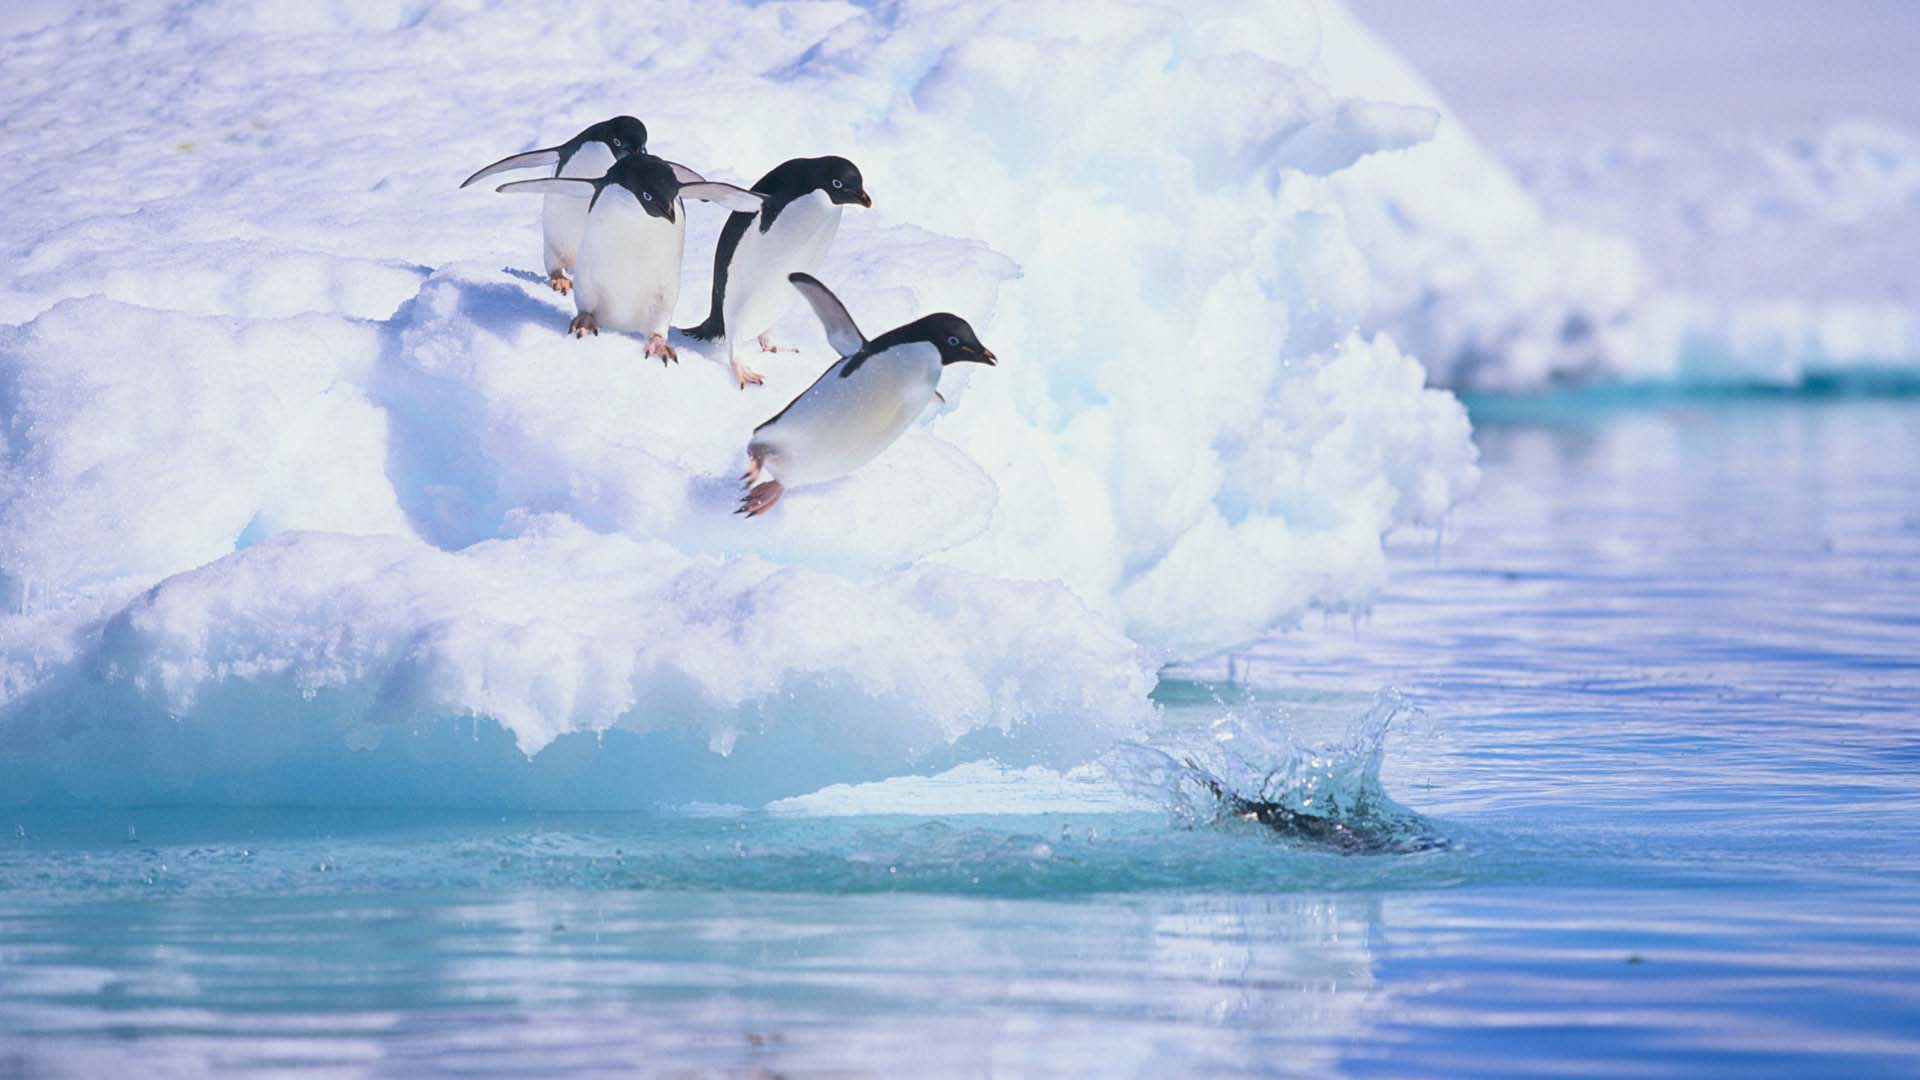 Parks attractions in antarctica natural world safaris for Can i visit antarctica